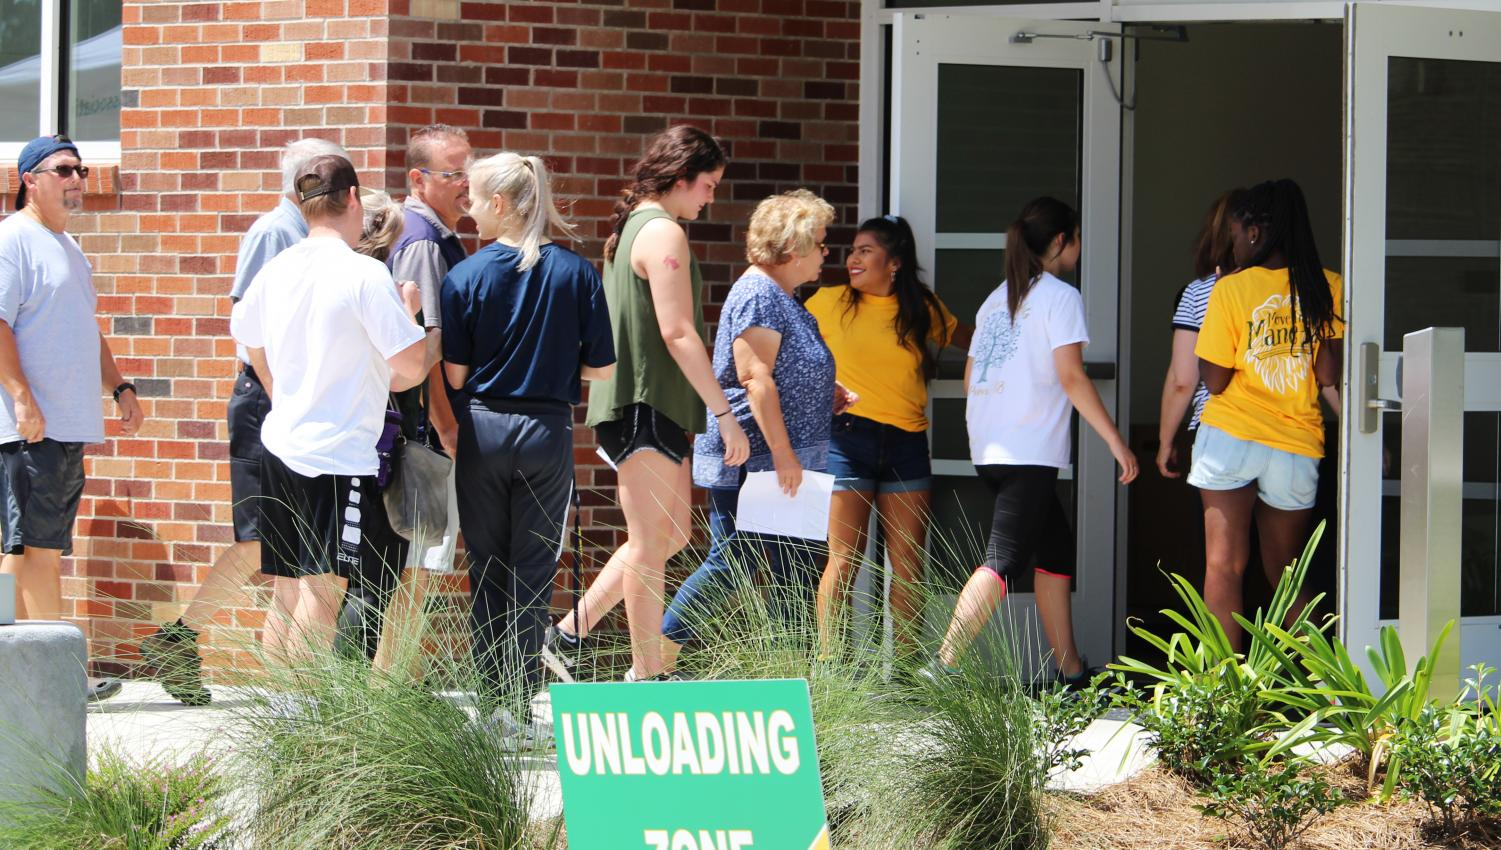 Students line up to get inside their dorms during the Move-in Mane-ia. While some students prefer living on campus, others find it better to commute.